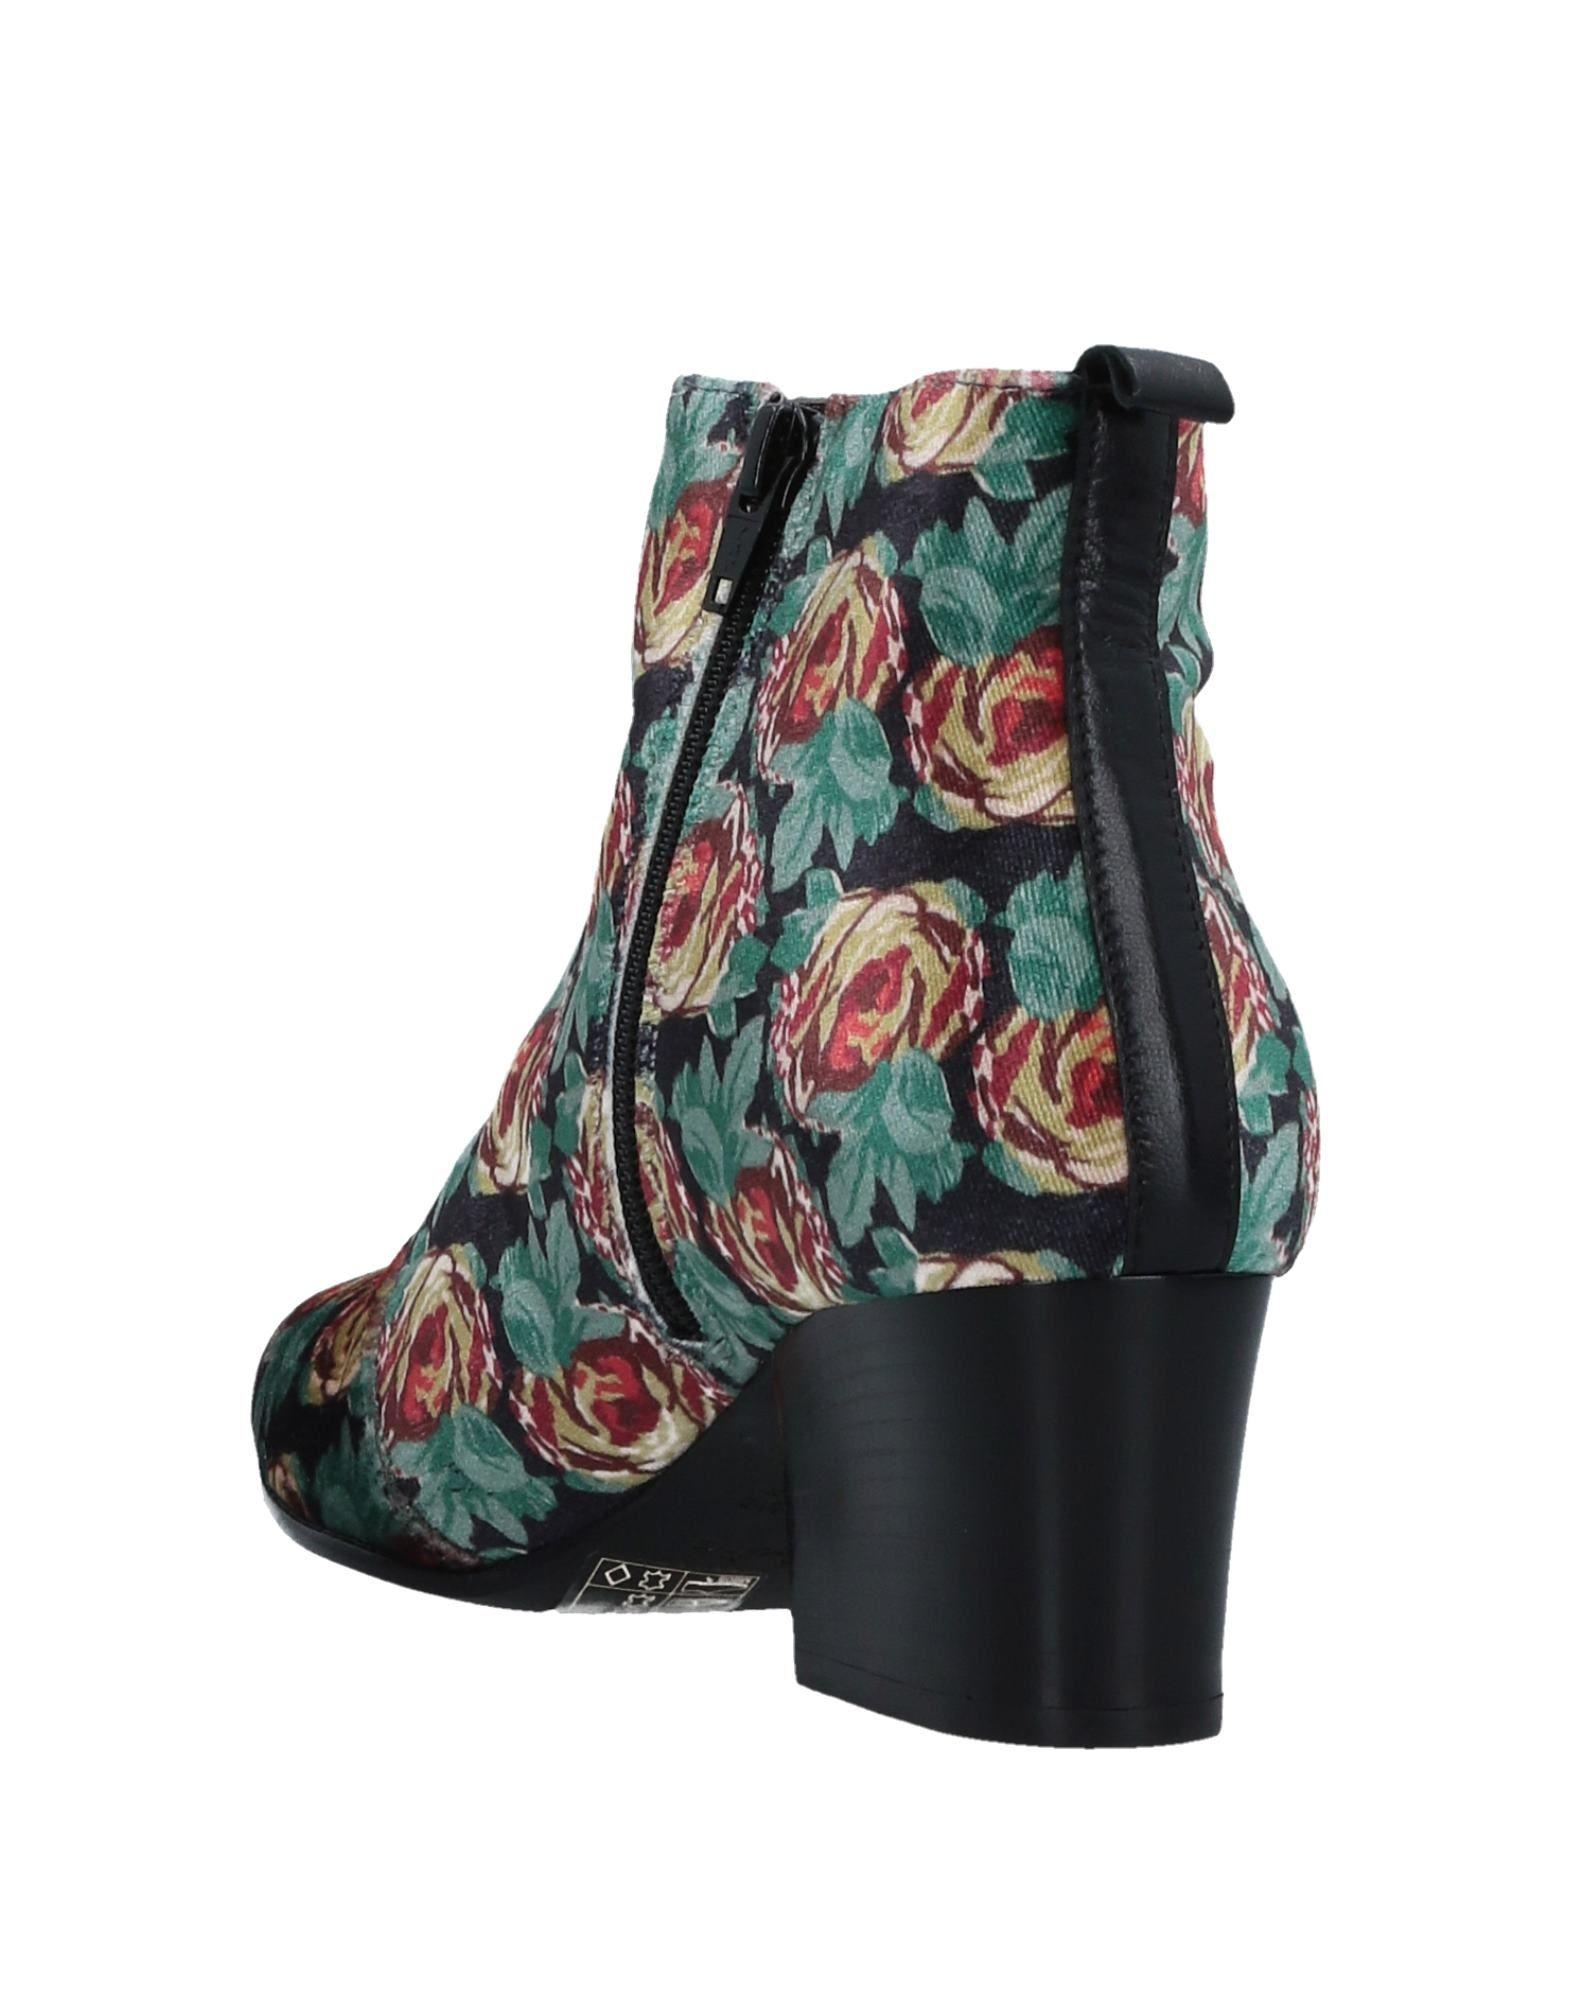 Ankle Boots in Lyst Corti Lisa Green 5qx6fnw